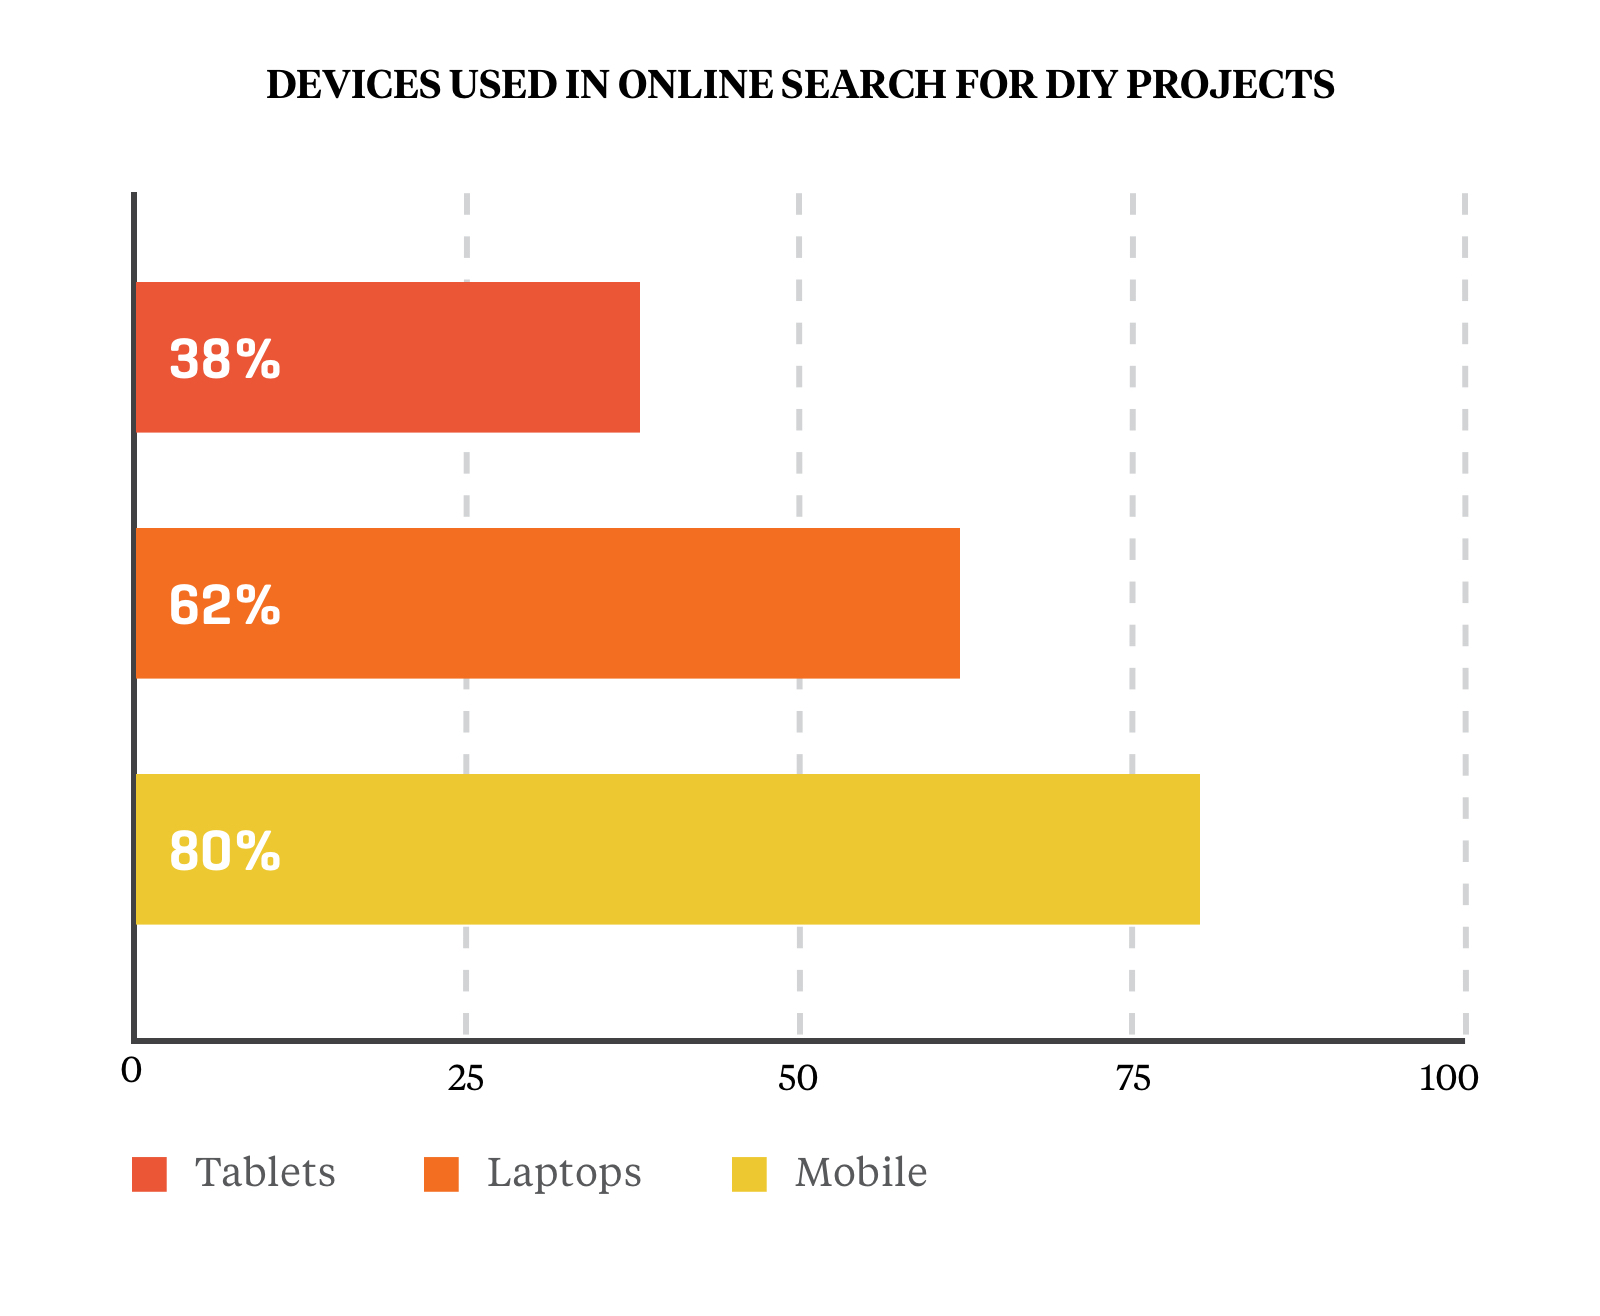 Devices Used in Online Search for DIY Projects